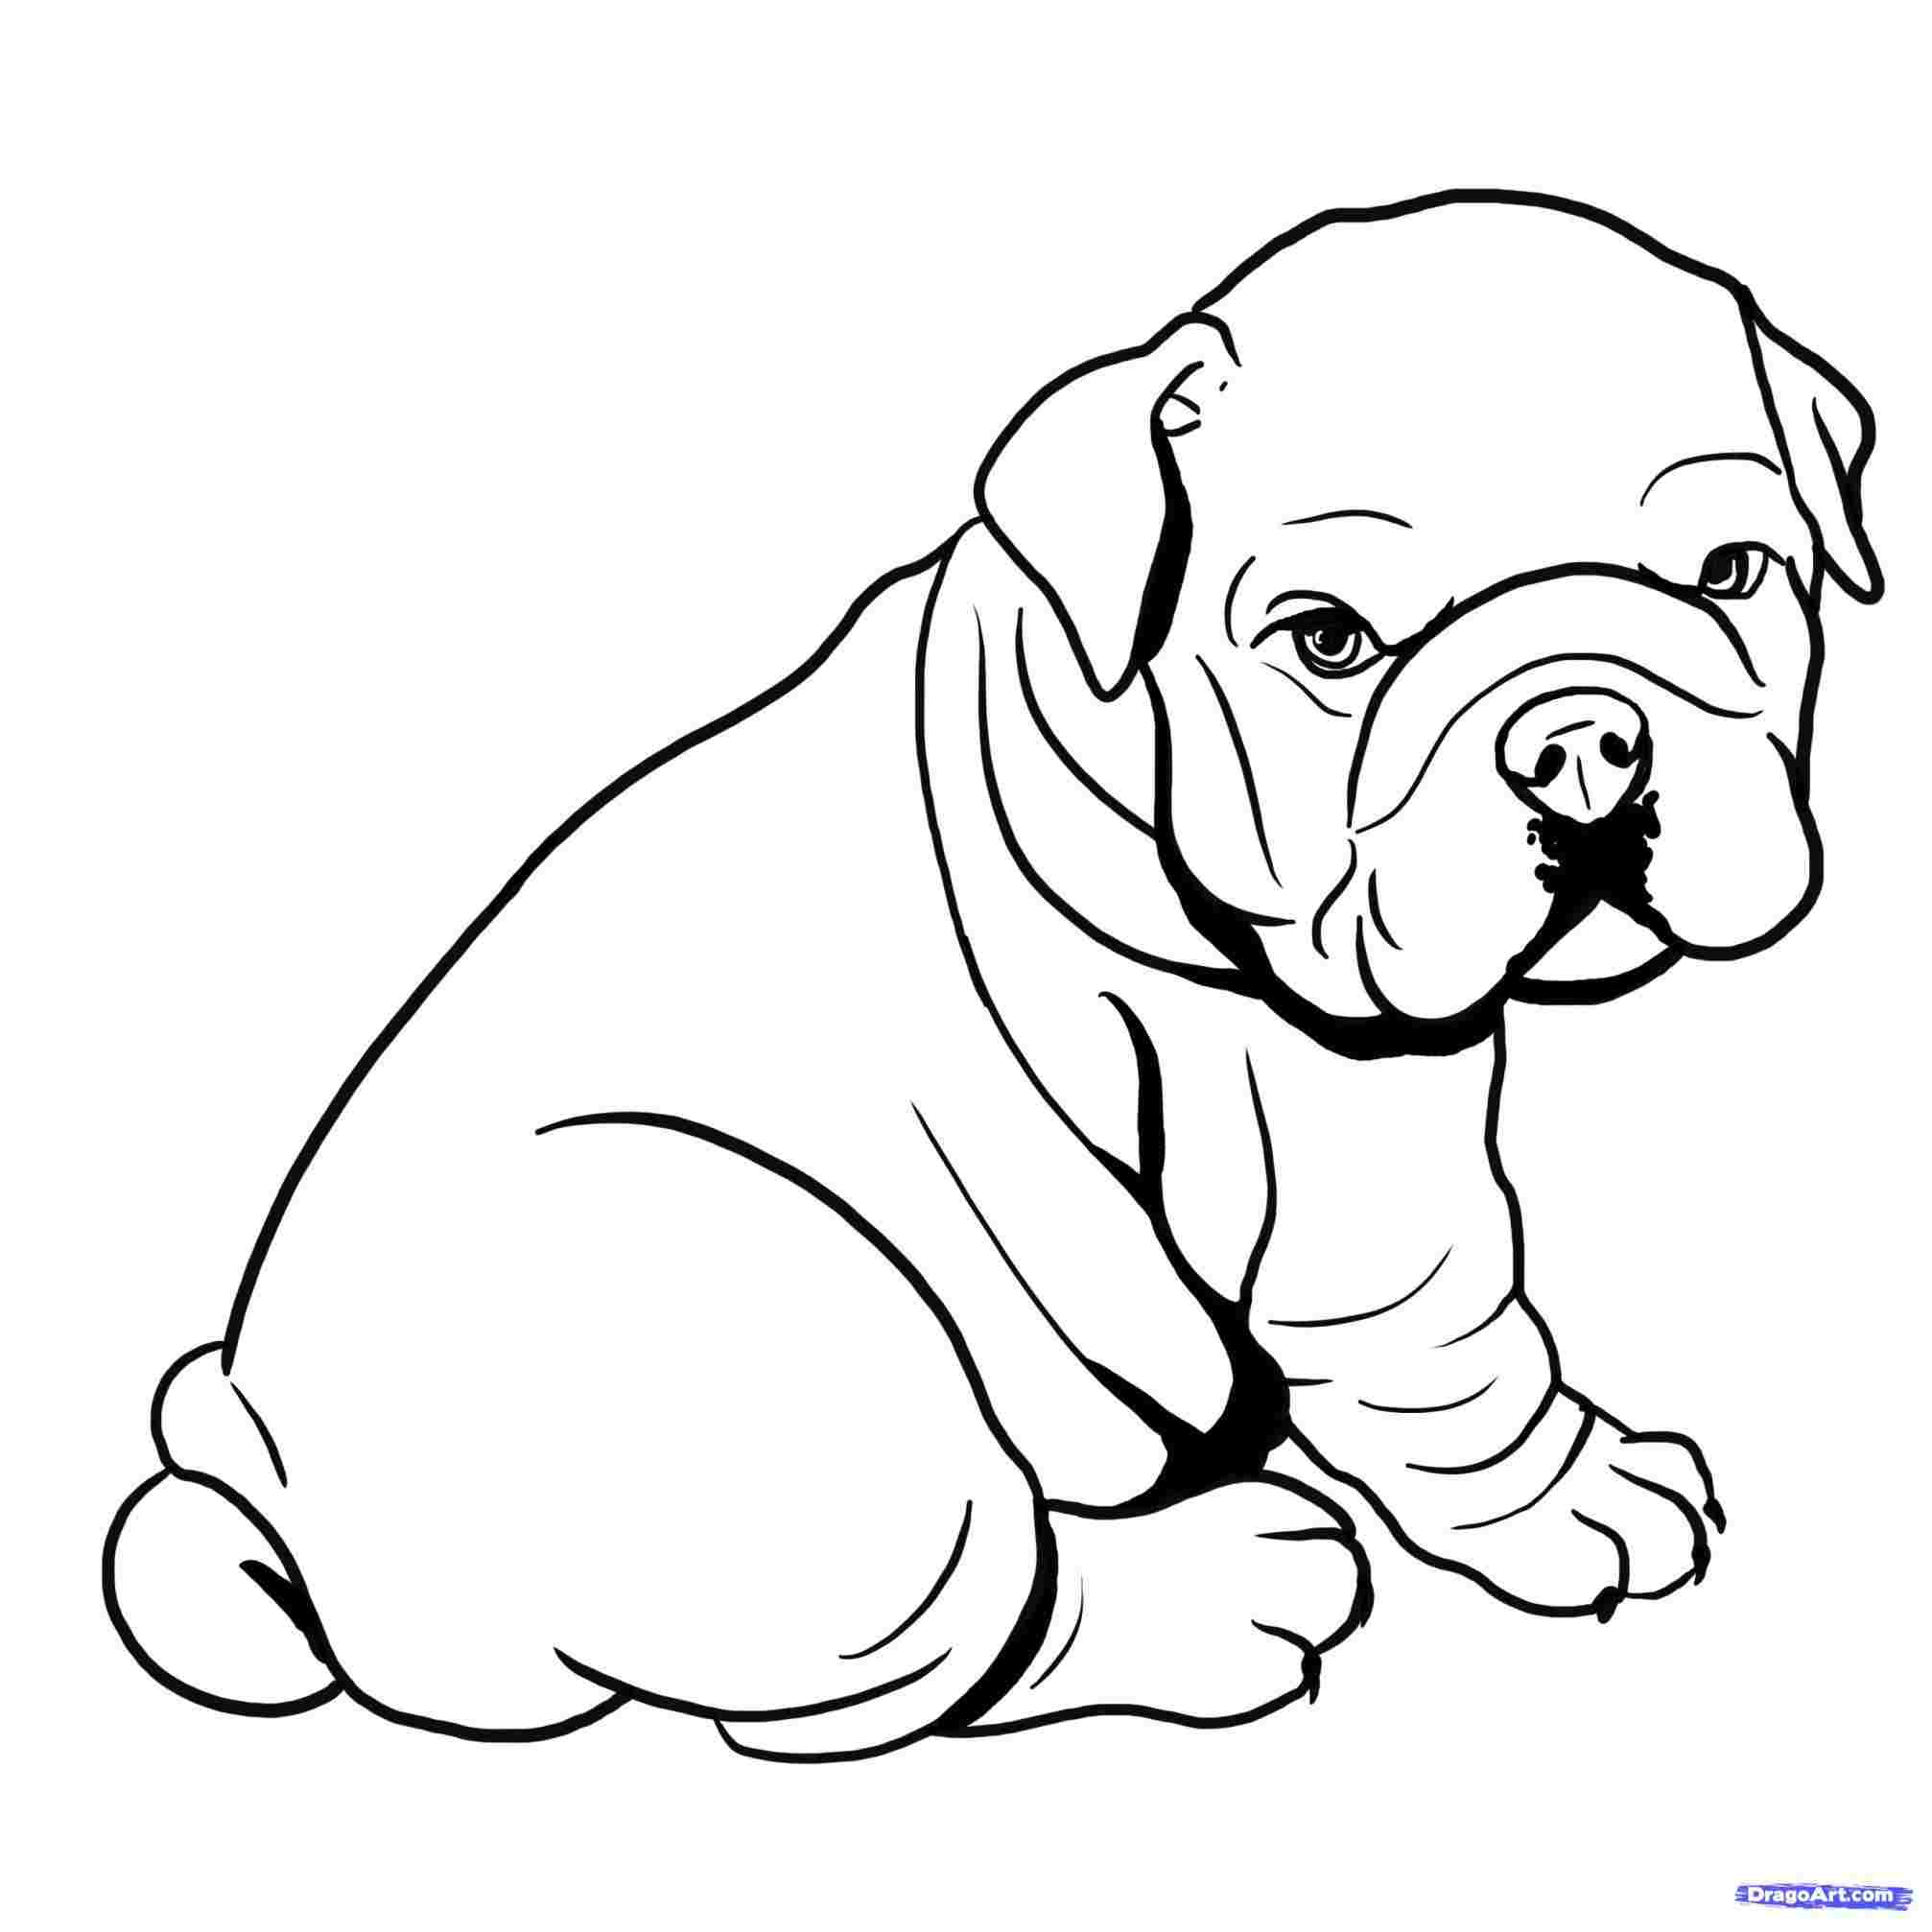 sitting dog coloring pages sitting dog drawing free download on clipartmag pages coloring sitting dog